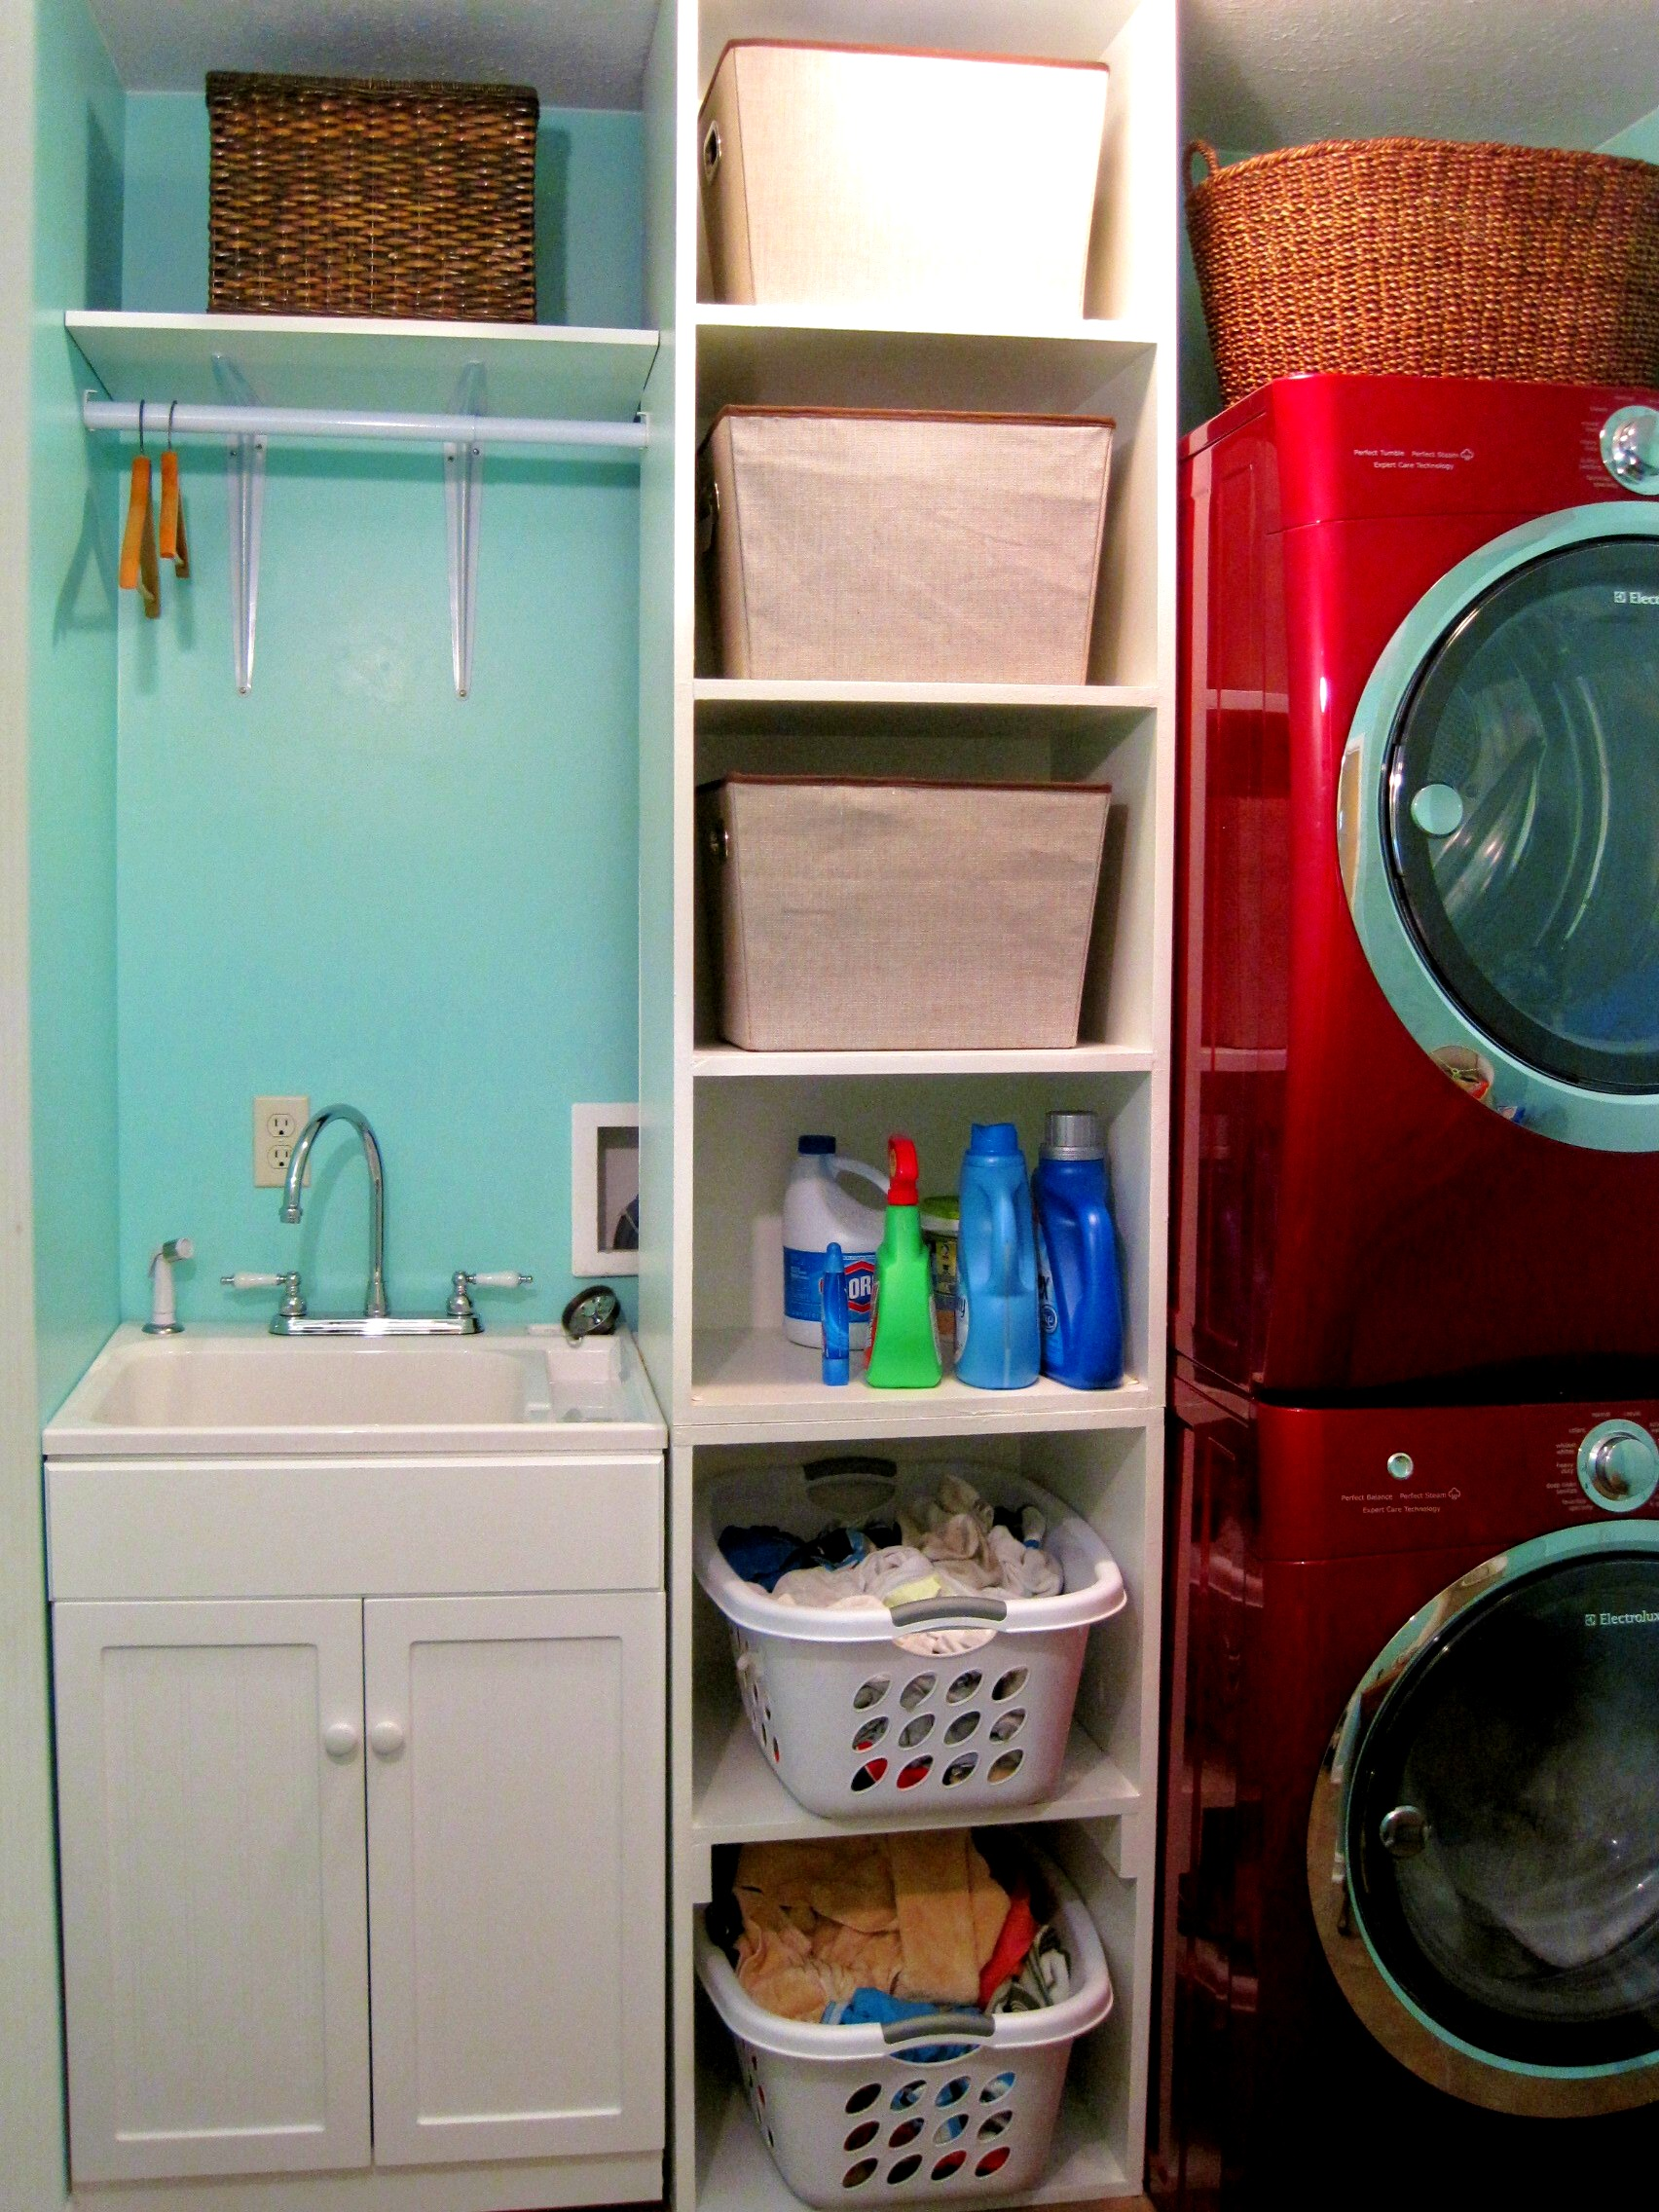 Laundry Room Shelving Ideas For Small Spaces You Need To See